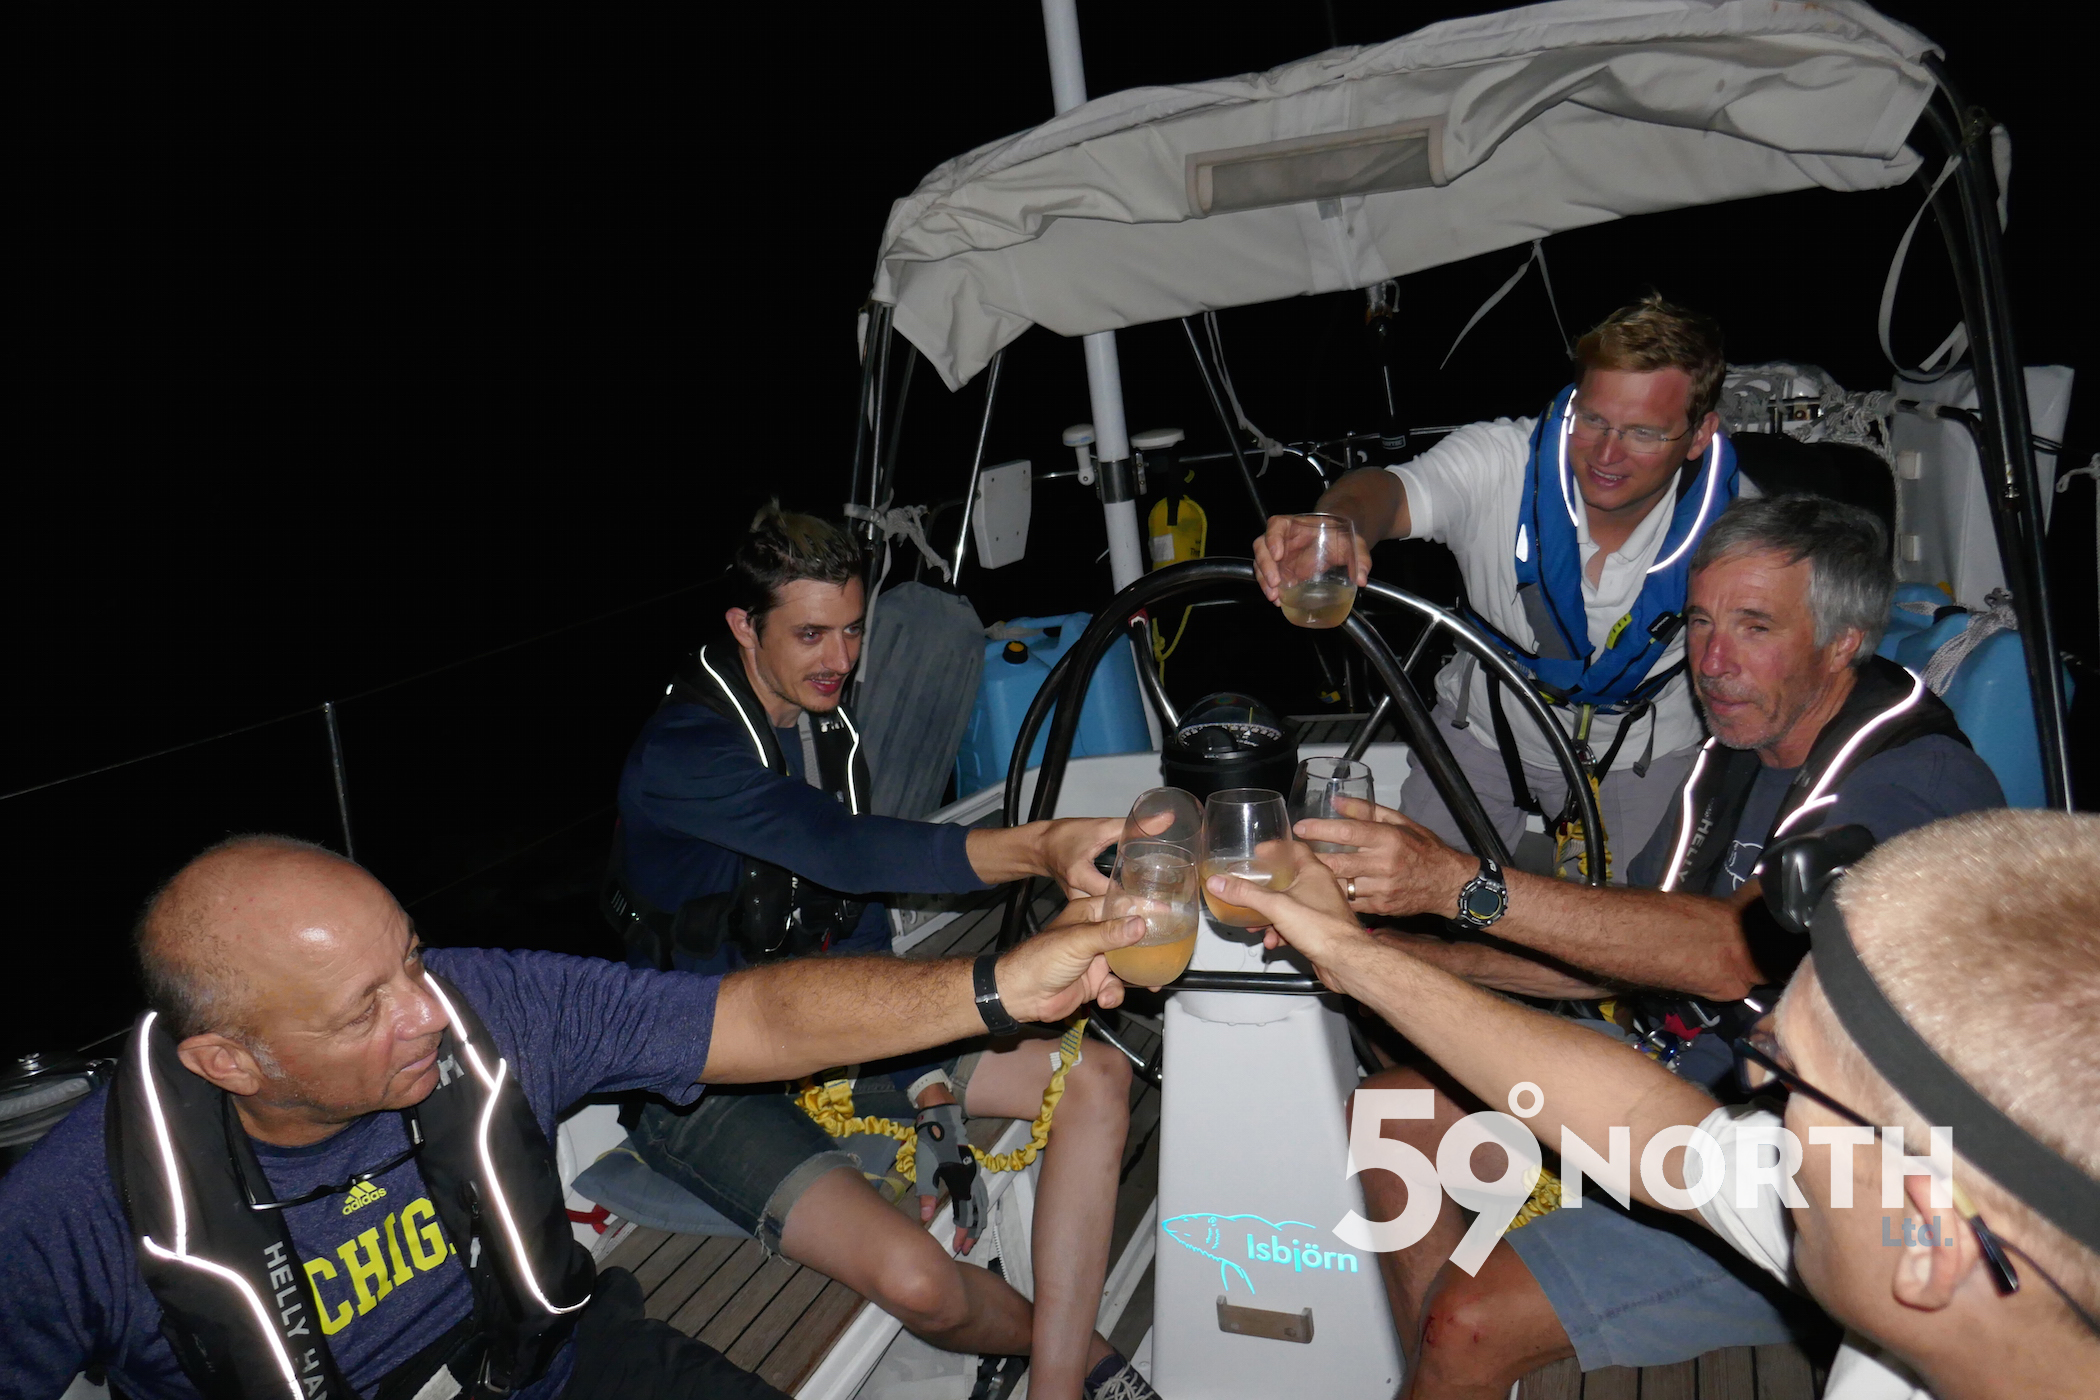 Celebrating with a cold glass of bubble after crossing the finish line in C1500, from the Chesapeake to the BVI! Nov. 2016